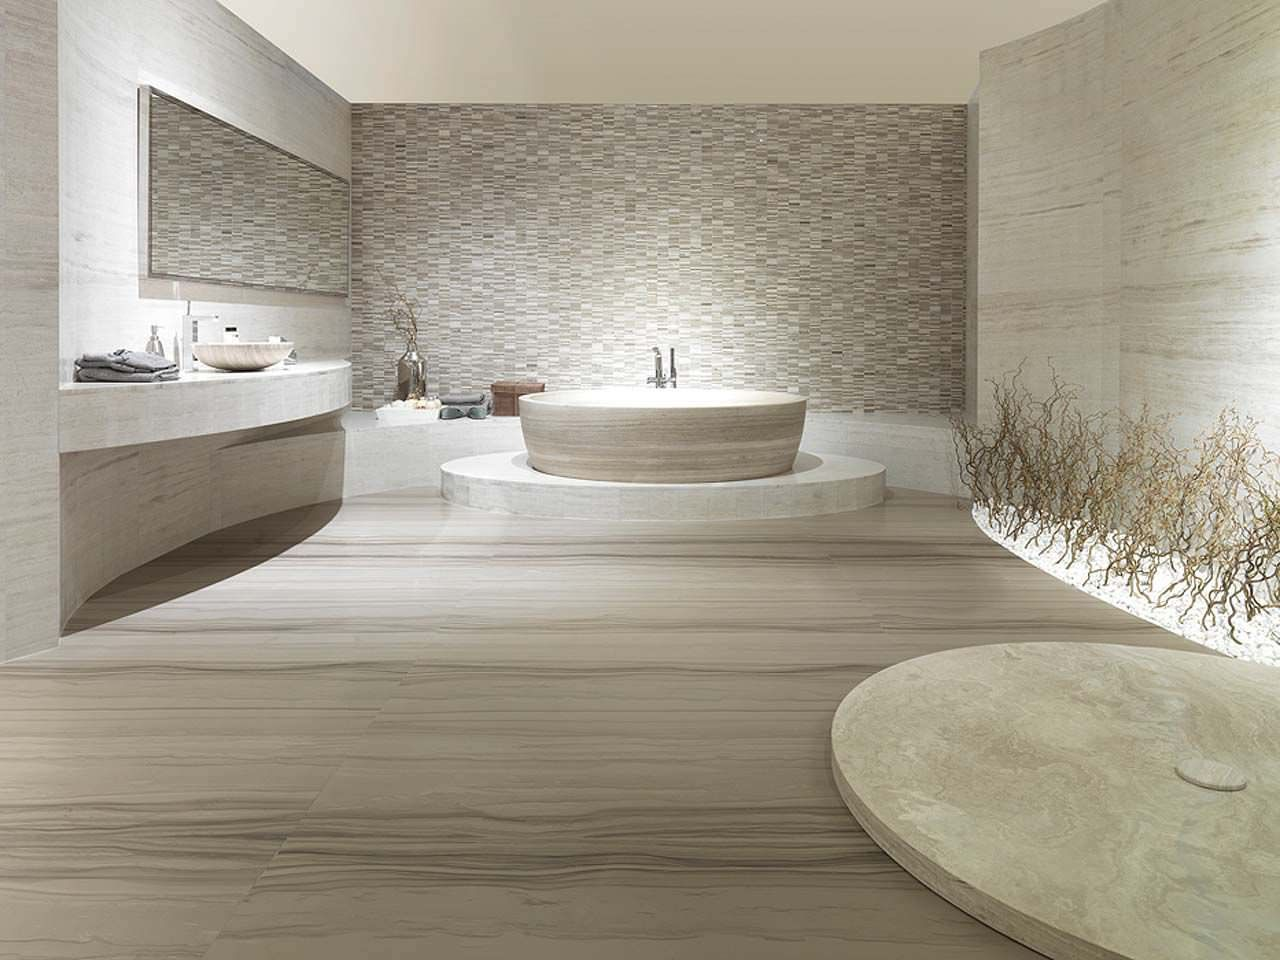 carrelage de salle de bain de sol en travertin poli travertino silk wood porcelanosa box. Black Bedroom Furniture Sets. Home Design Ideas